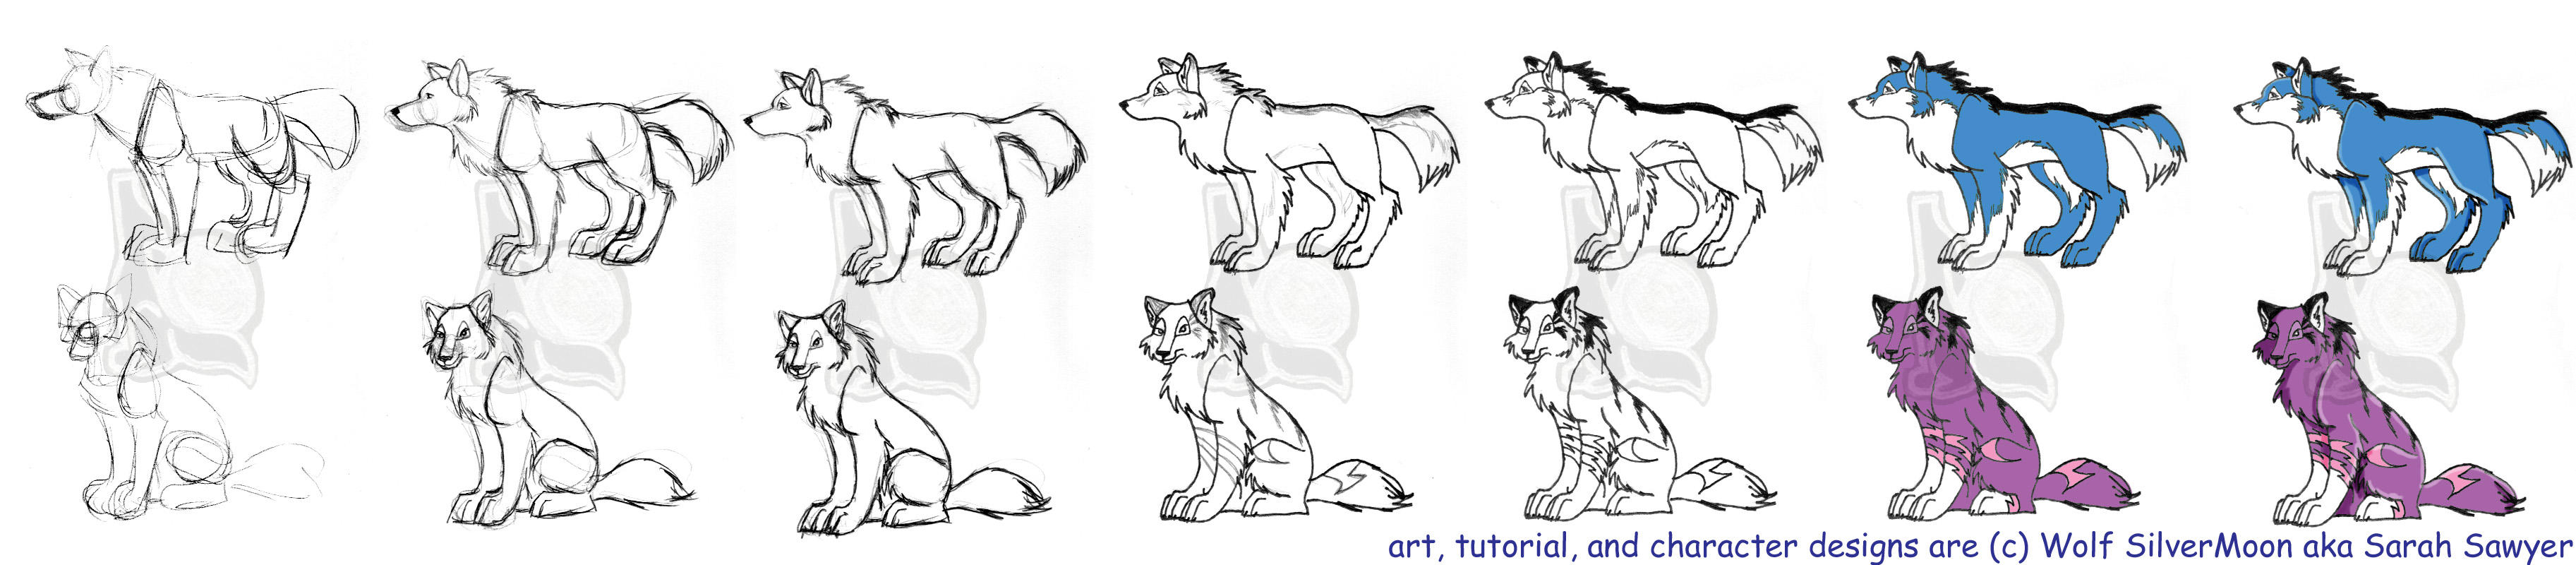 Drawing a wolf wsm style by wolfsilvermoon on deviantart drawing a wolf wsm style by wolfsilvermoon ccuart Choice Image